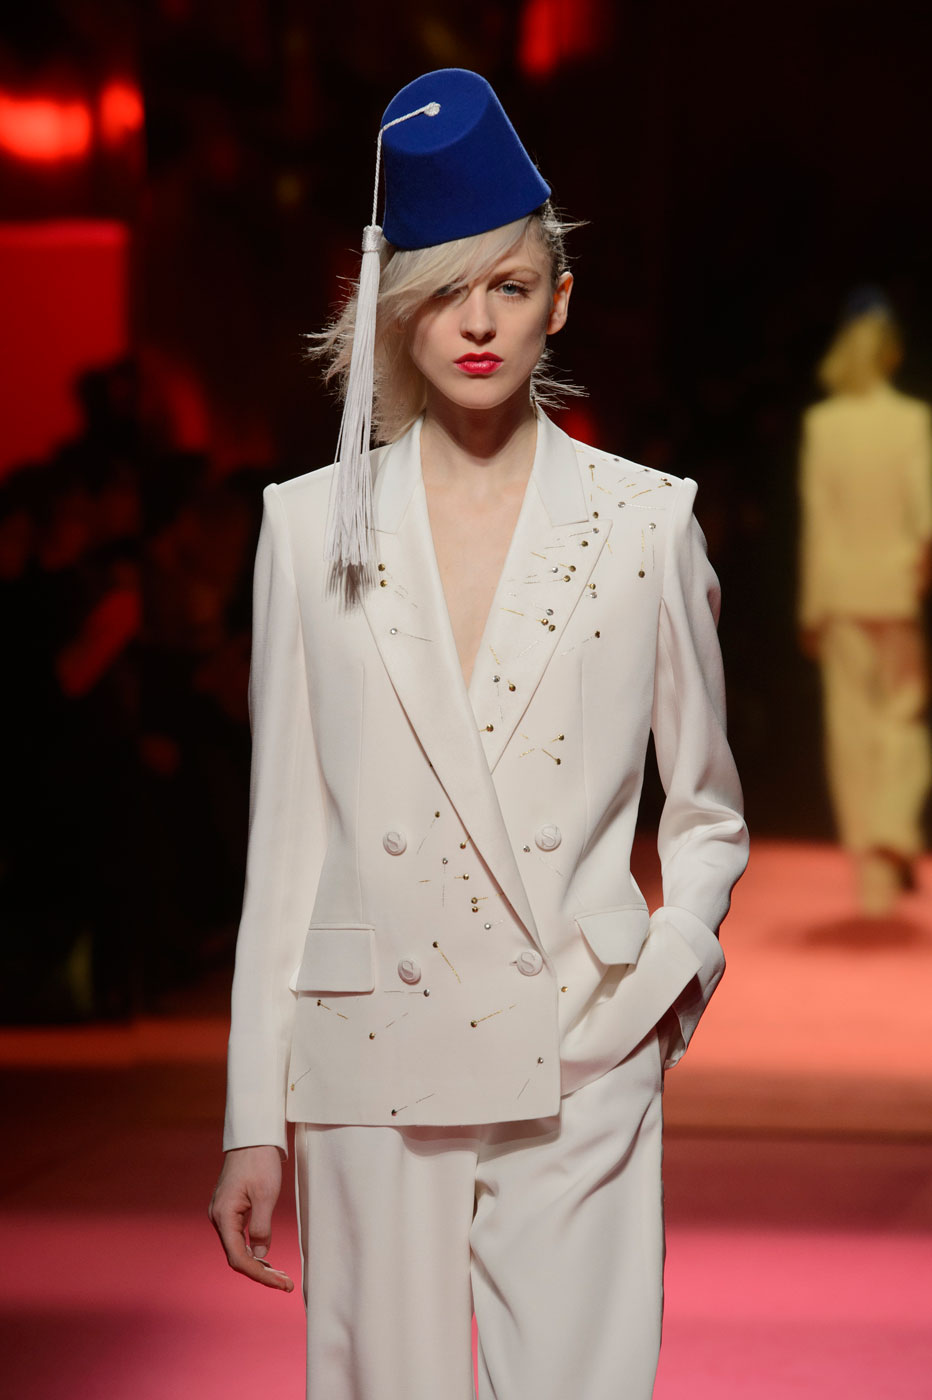 Schiaparelli-fashion-runway-show-haute-couture-paris-spring-summer-2015-the-impression-04